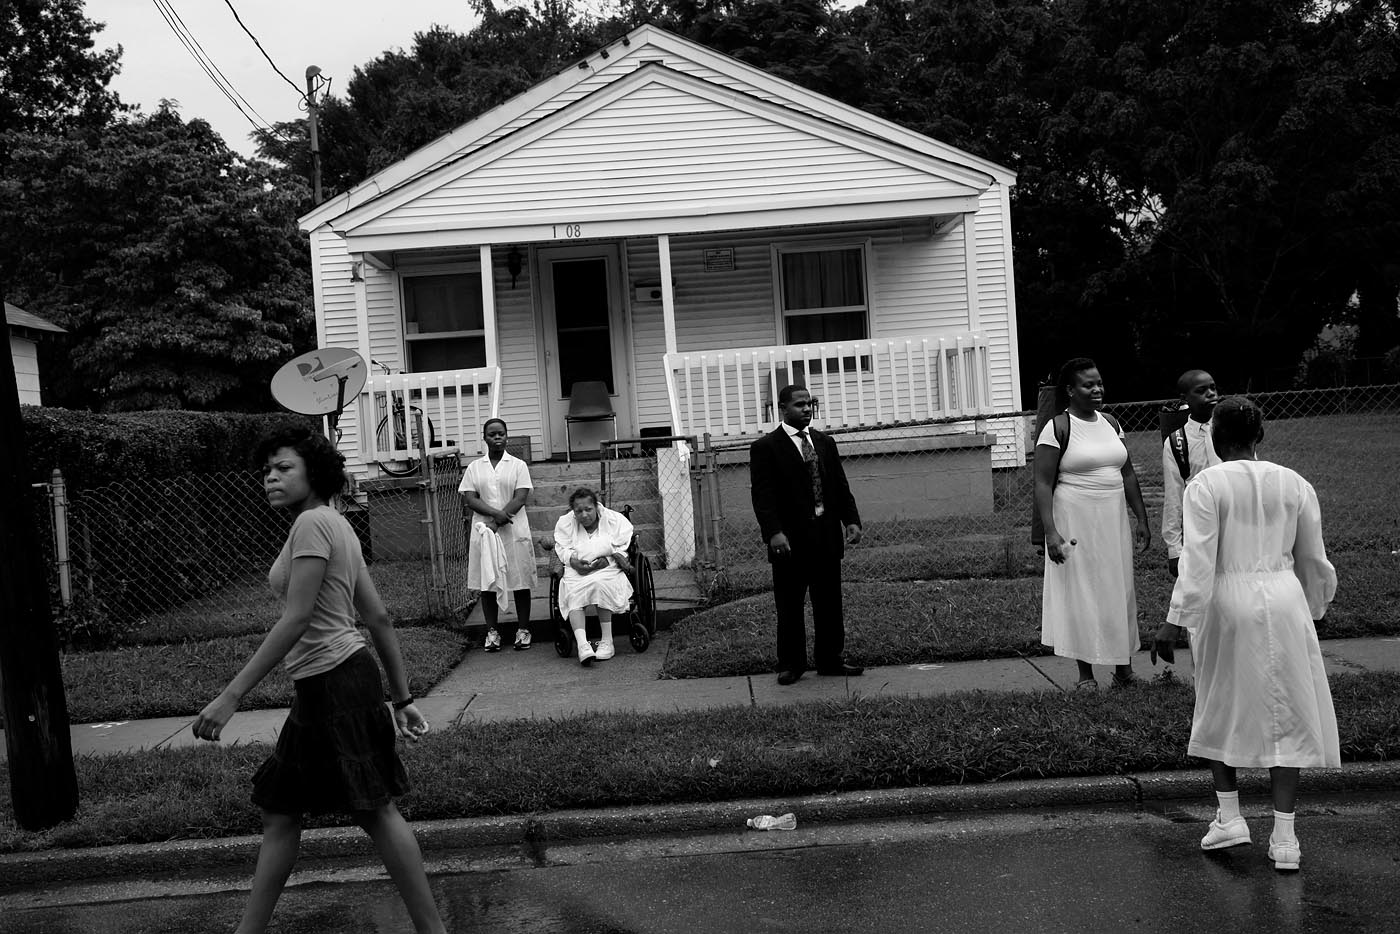 A few people linger after the crowds disperse following the mass baptism for the United House of Prayer of All People in Newport News, Virginia. Busloads of church-goers are brought to the neighborhood each year for the event.